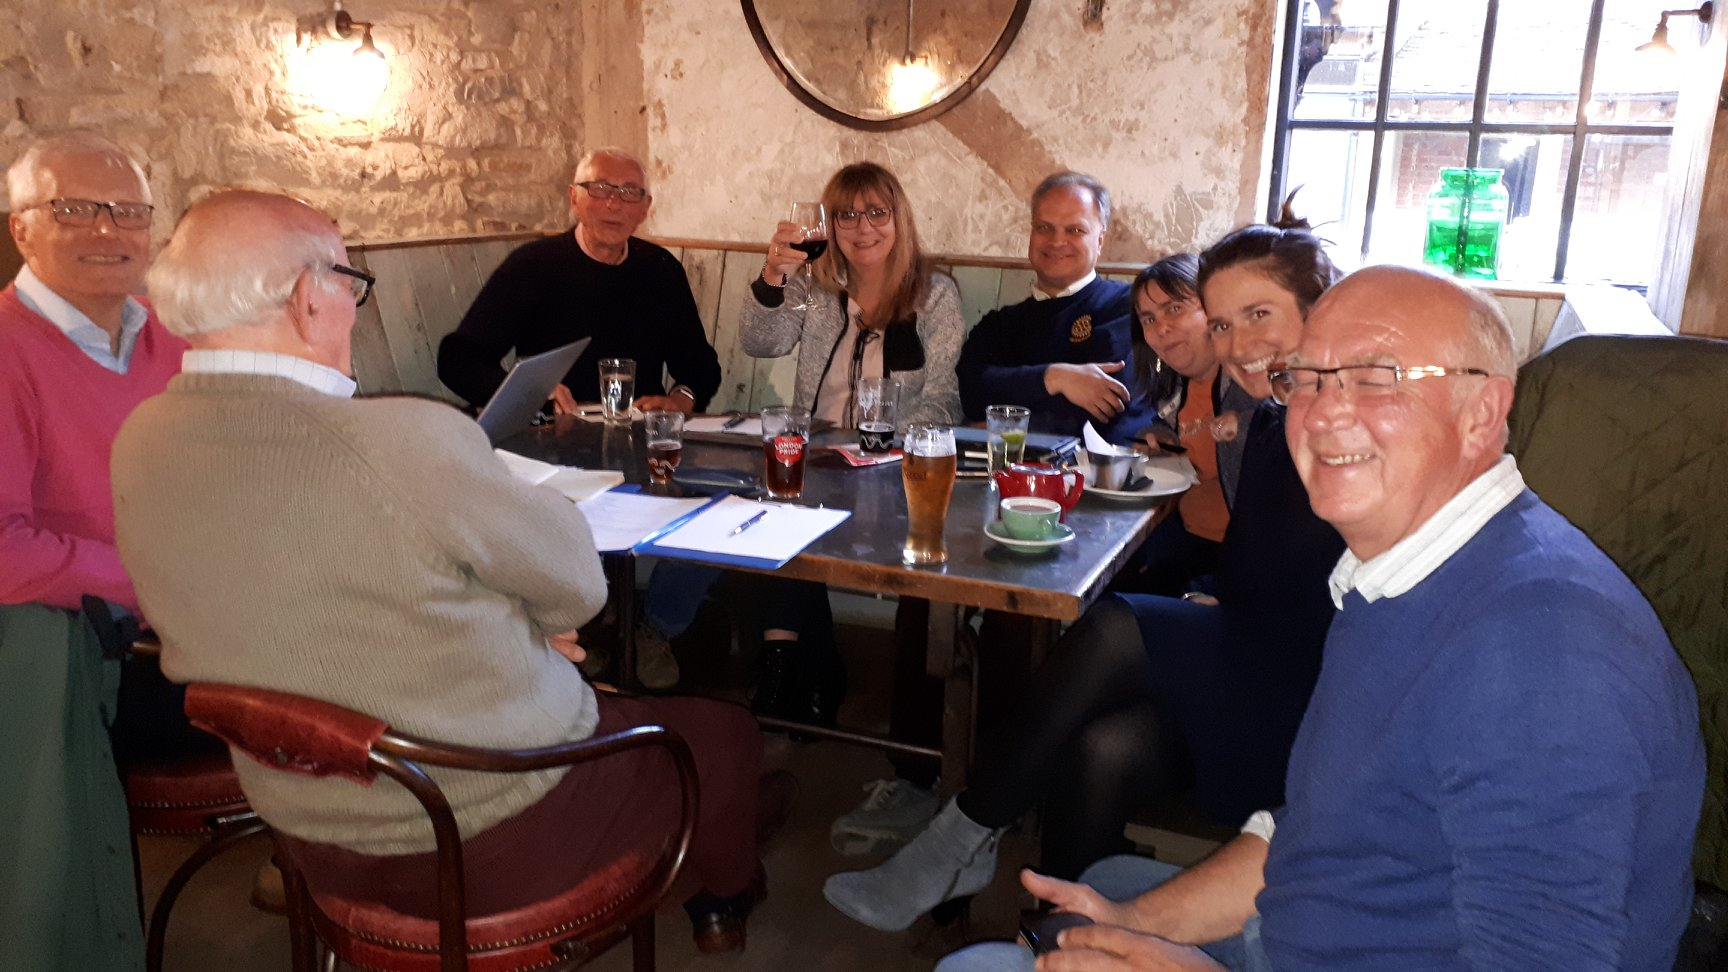 Another convivial meeting of Rotary in Abingdon